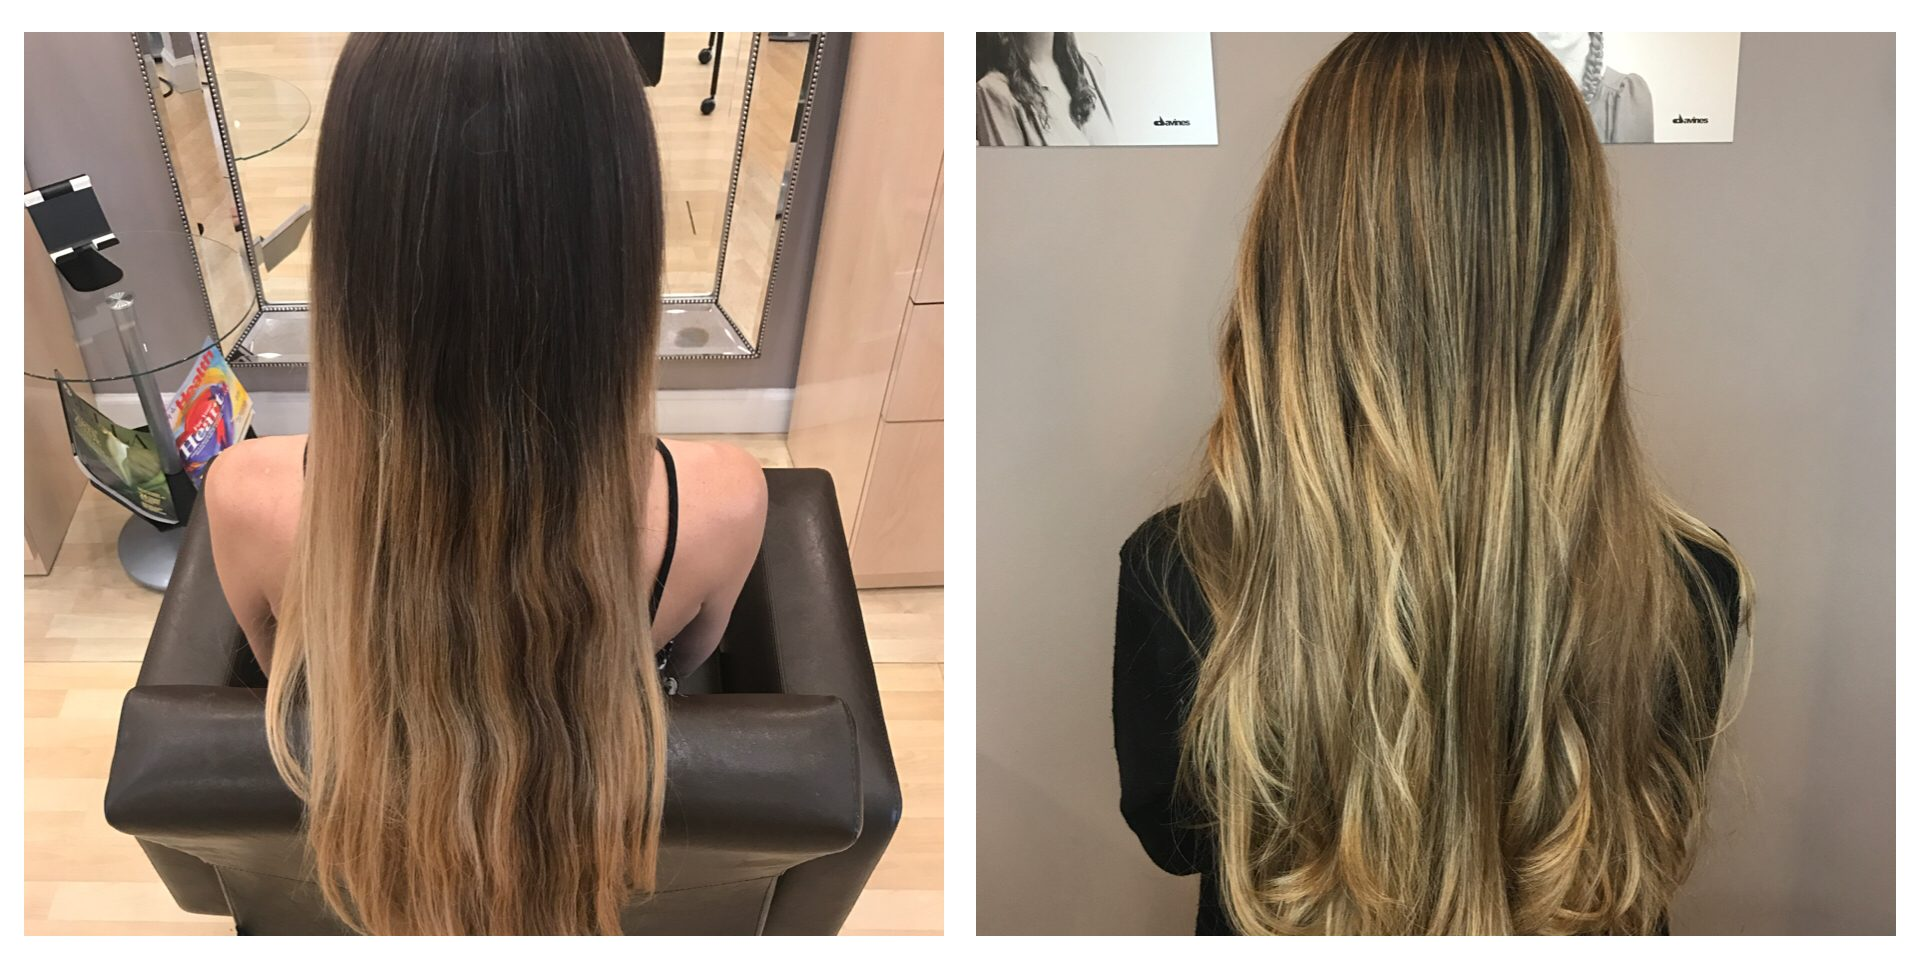 Balayage-Toner-Haircut-and-Blow-dry-1920x968 Before and After Hair Makeovers in Naples FL